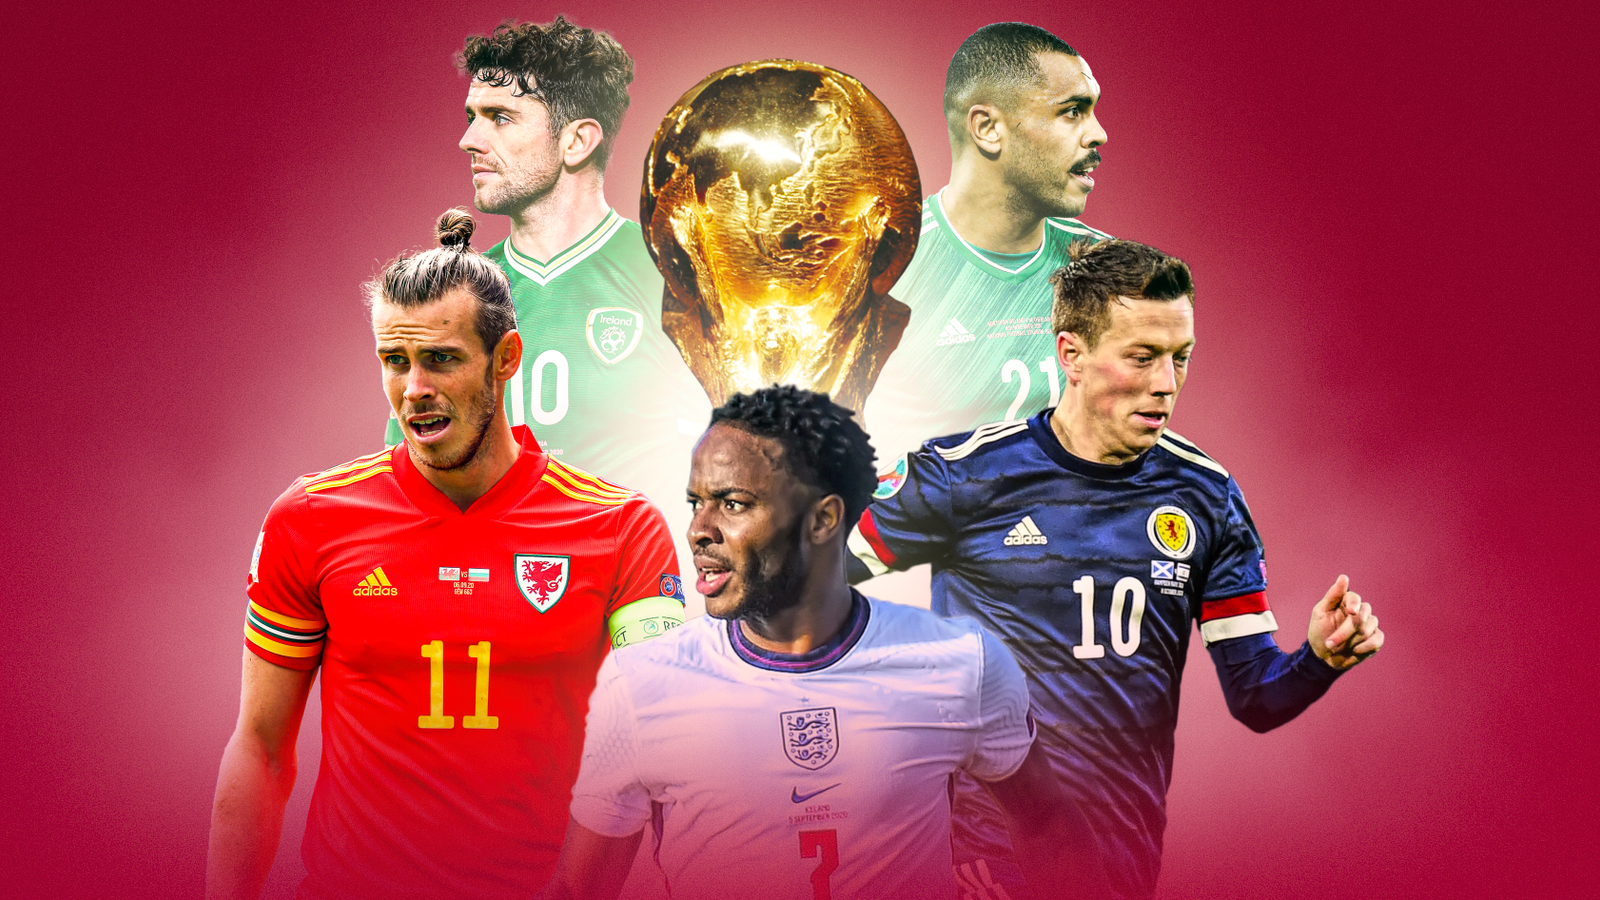 World Cup 2022 European Qualifiers: Schedule, group stage, play-off format, finals